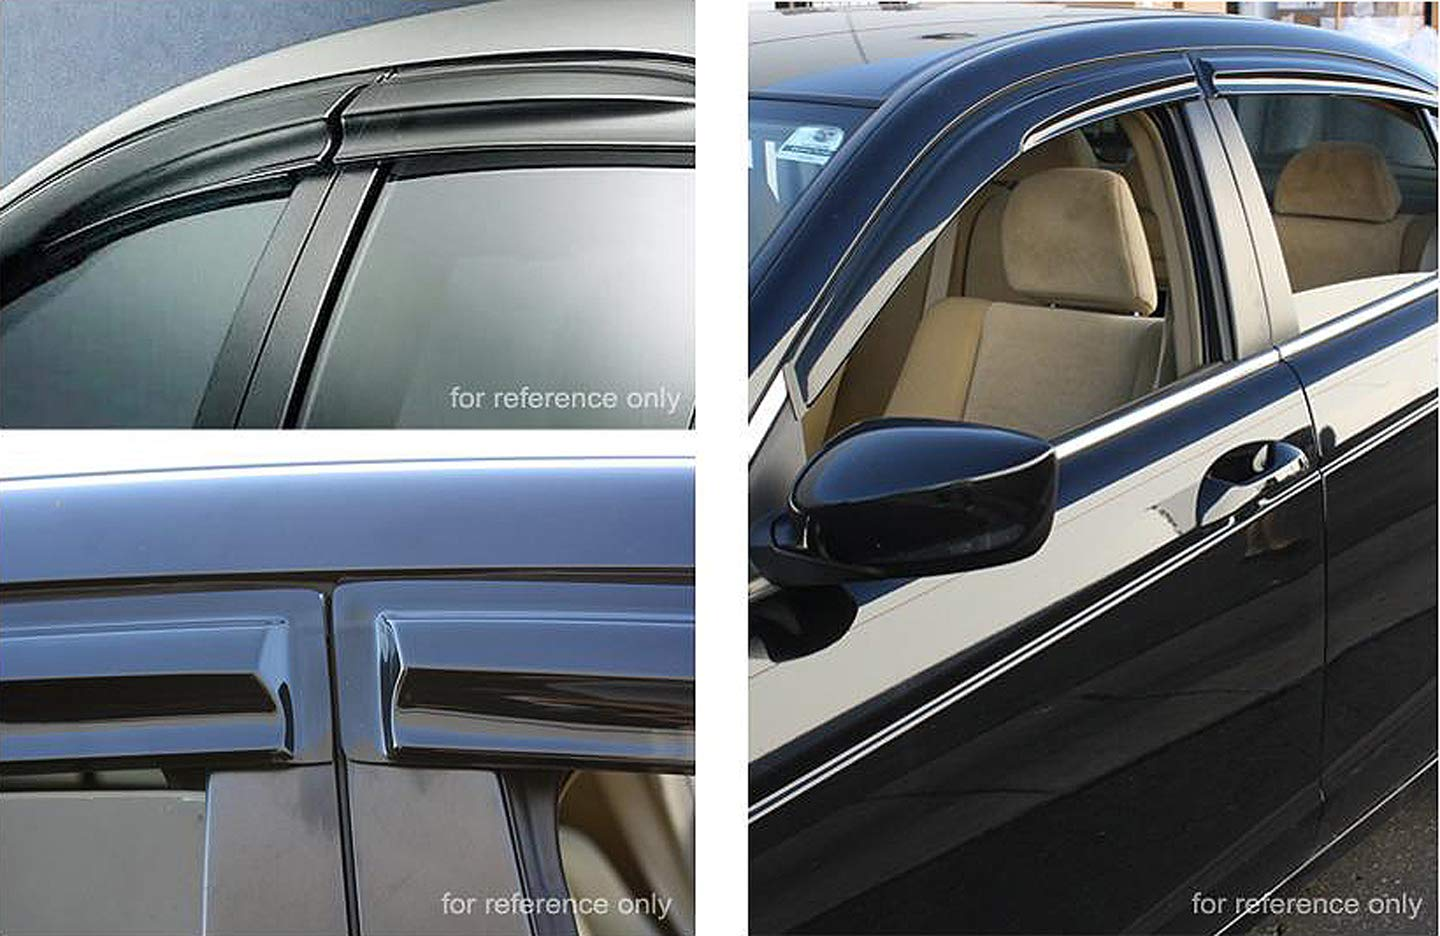 ICBEAMER 4 pcs Side Window Visors Deflectors for 2012-15 Honda Odyssey 4 Doors Sedan Vent Visor Sun//Rain Guard Set